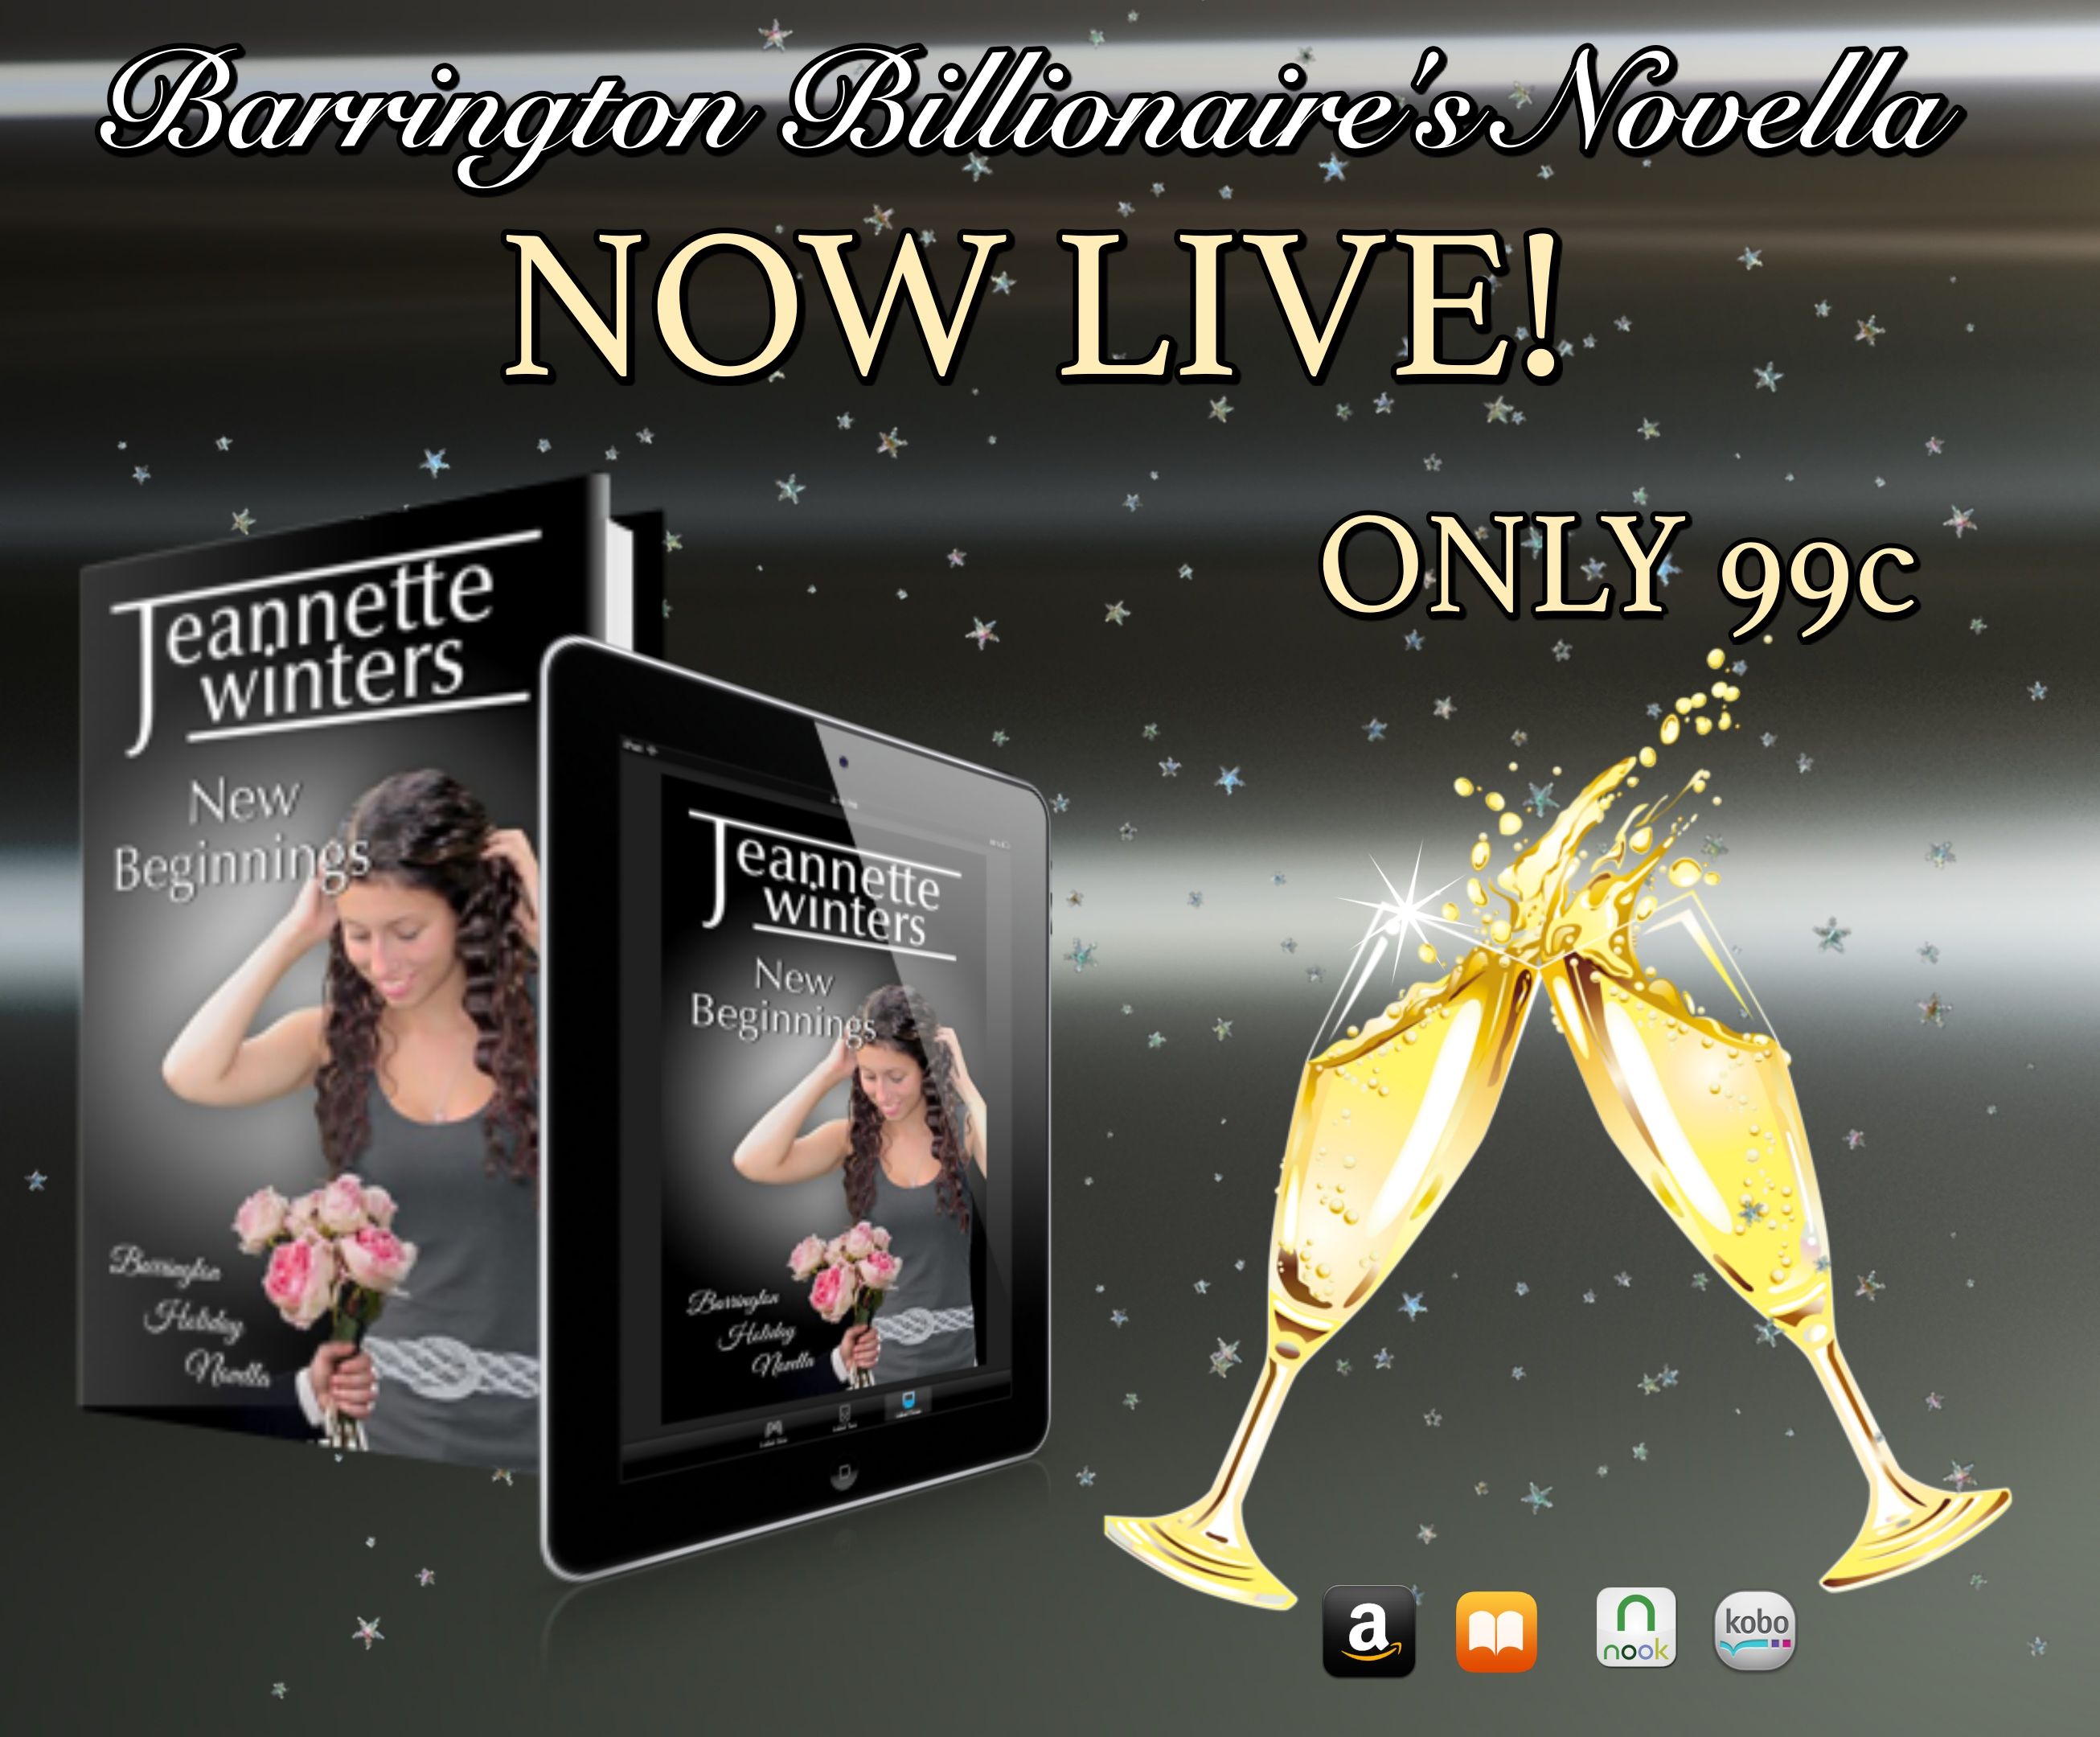 NEW BEGINNINGS 99C PROMO